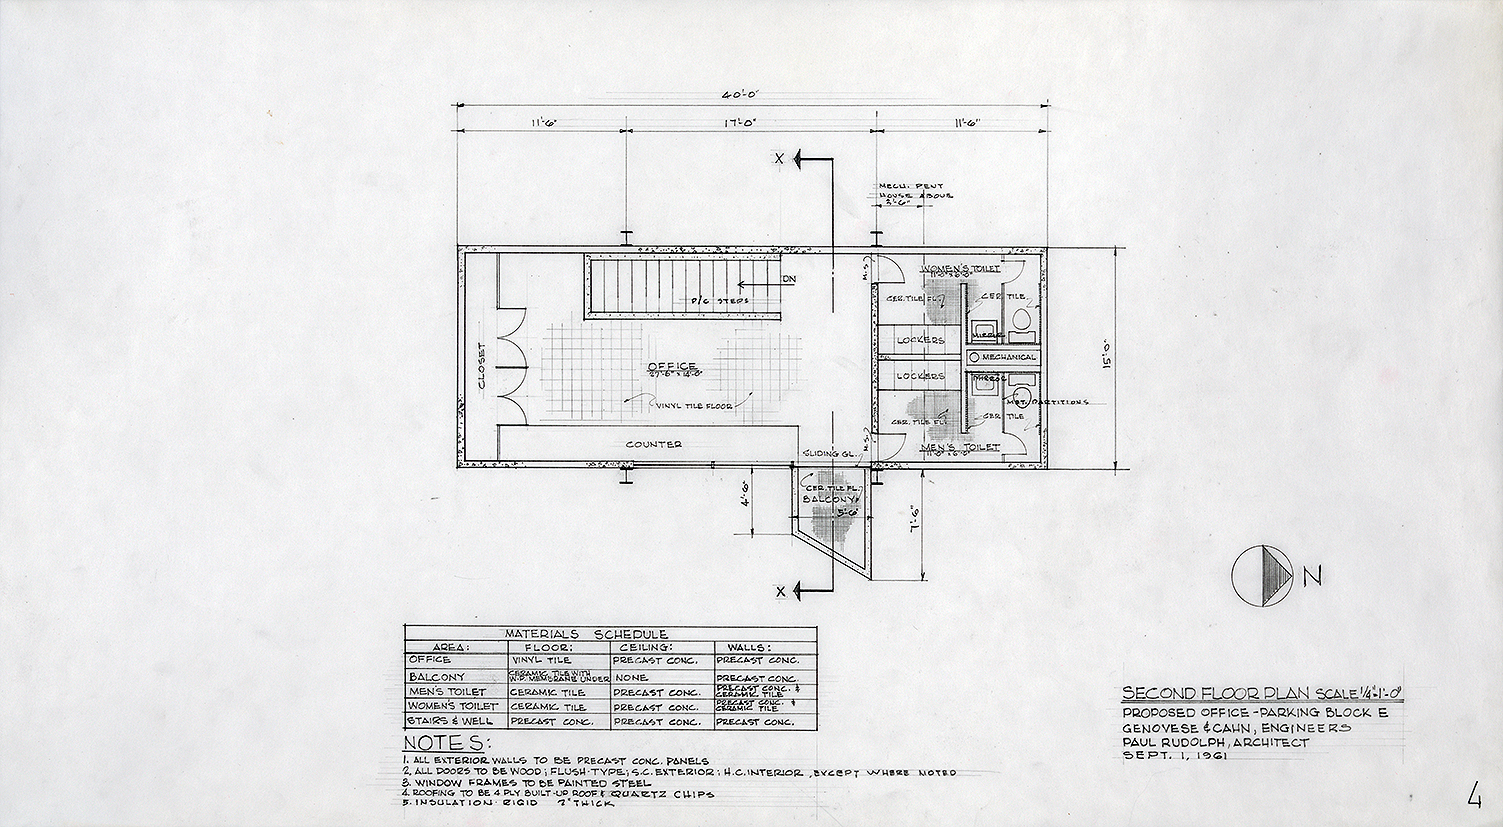 Manager's Office, Parking Garage,  New Haven, Connecticut. Scheme A. Second Floor Plan.